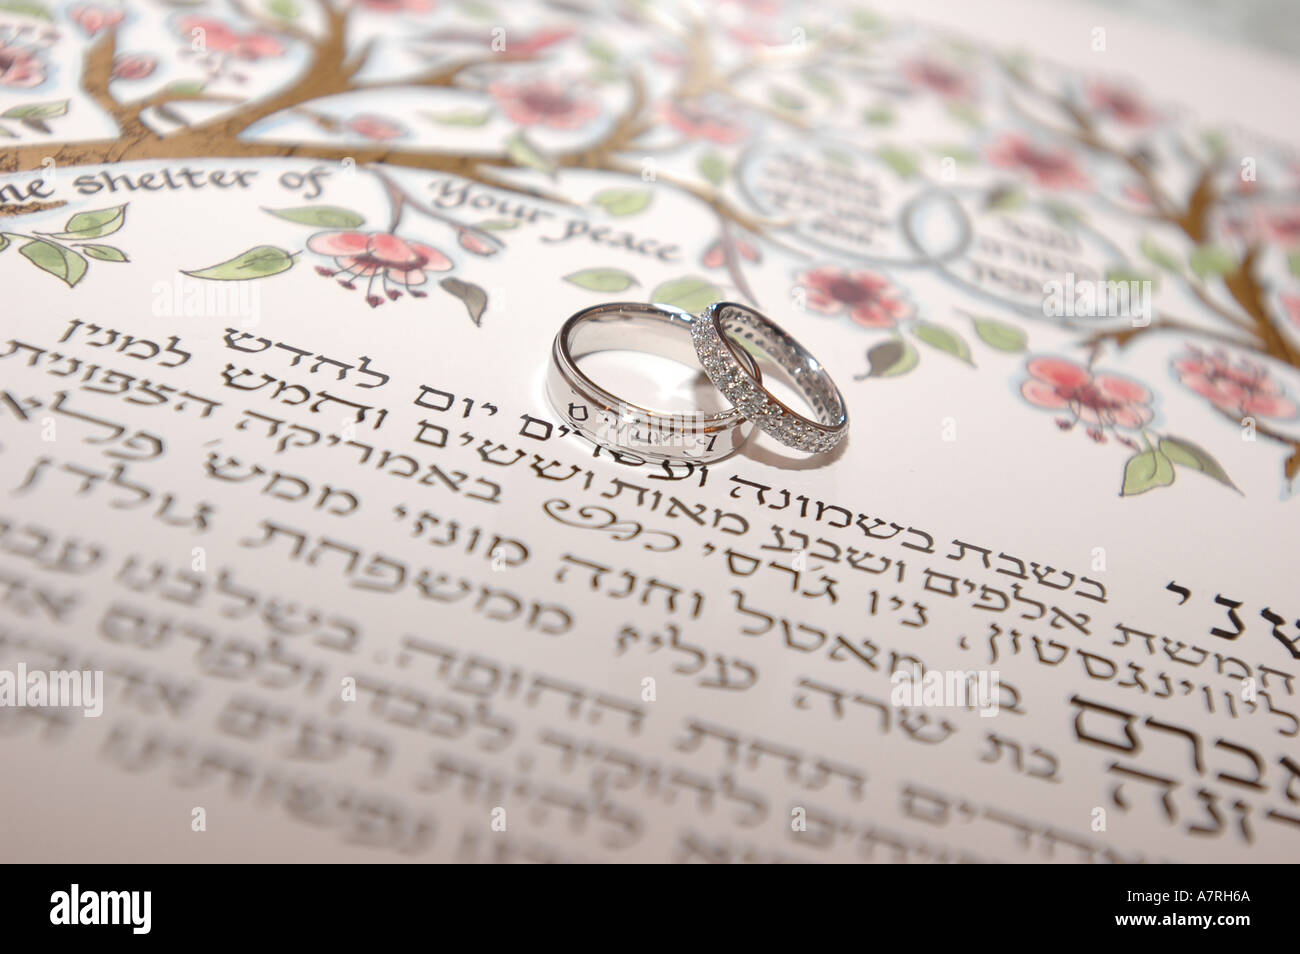 Ketubah Marriage Contract Stock Photos & Ketubah Marriage Contract ...